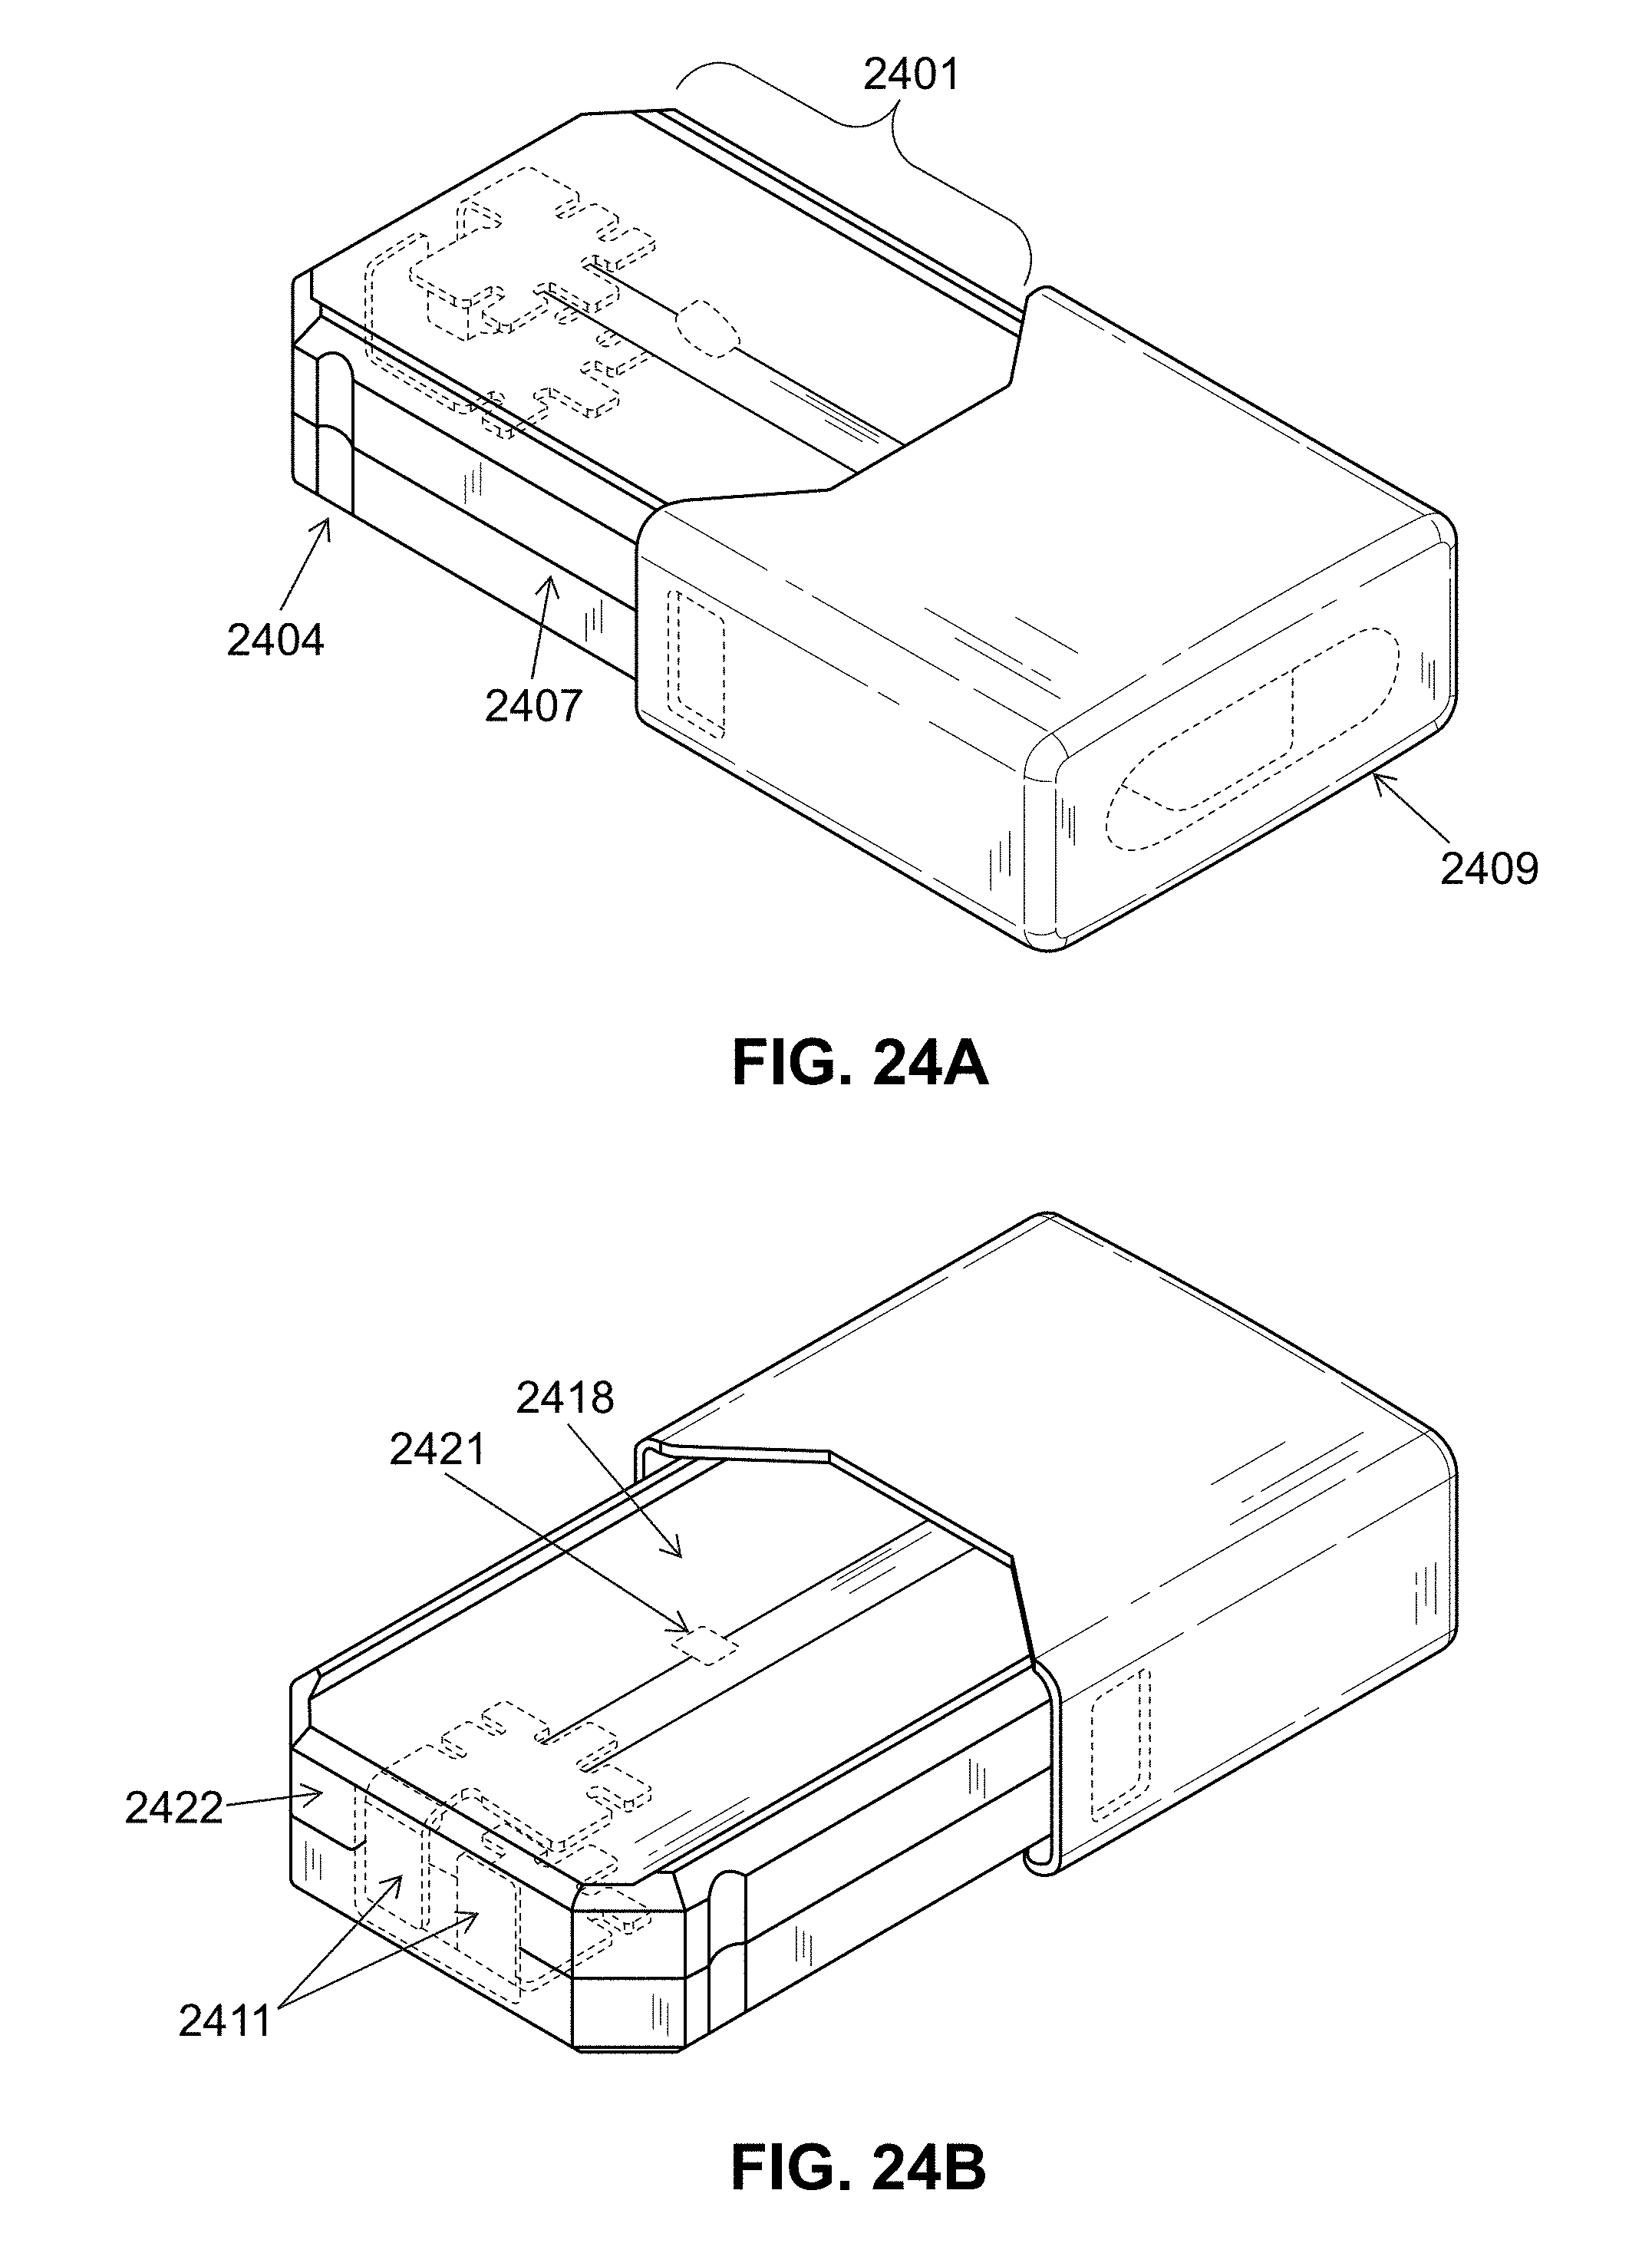 us10045568b2 vaporization device systems and methods patents Dj Wiring Diagram